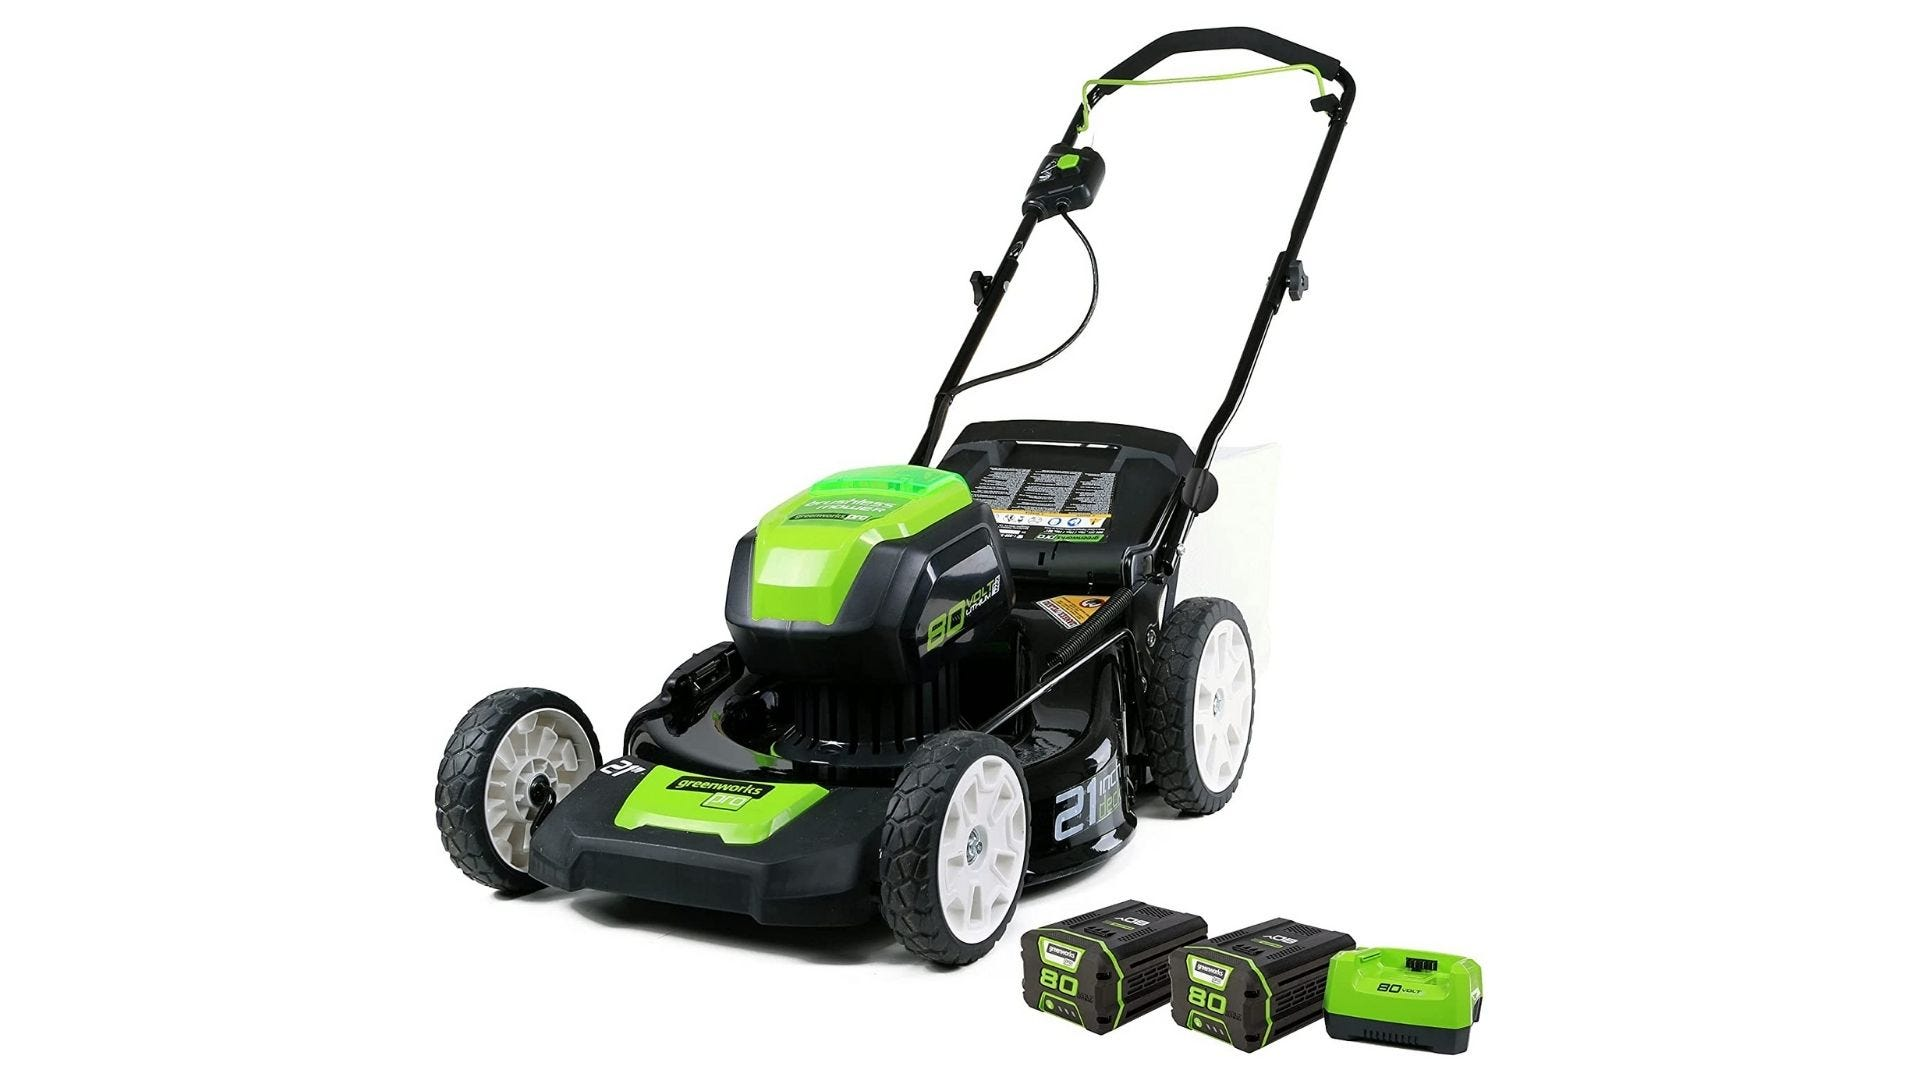 Greenworks Pro 80V 21-Inch Brushless Cordless (3-In-1) Push Lawn Mower